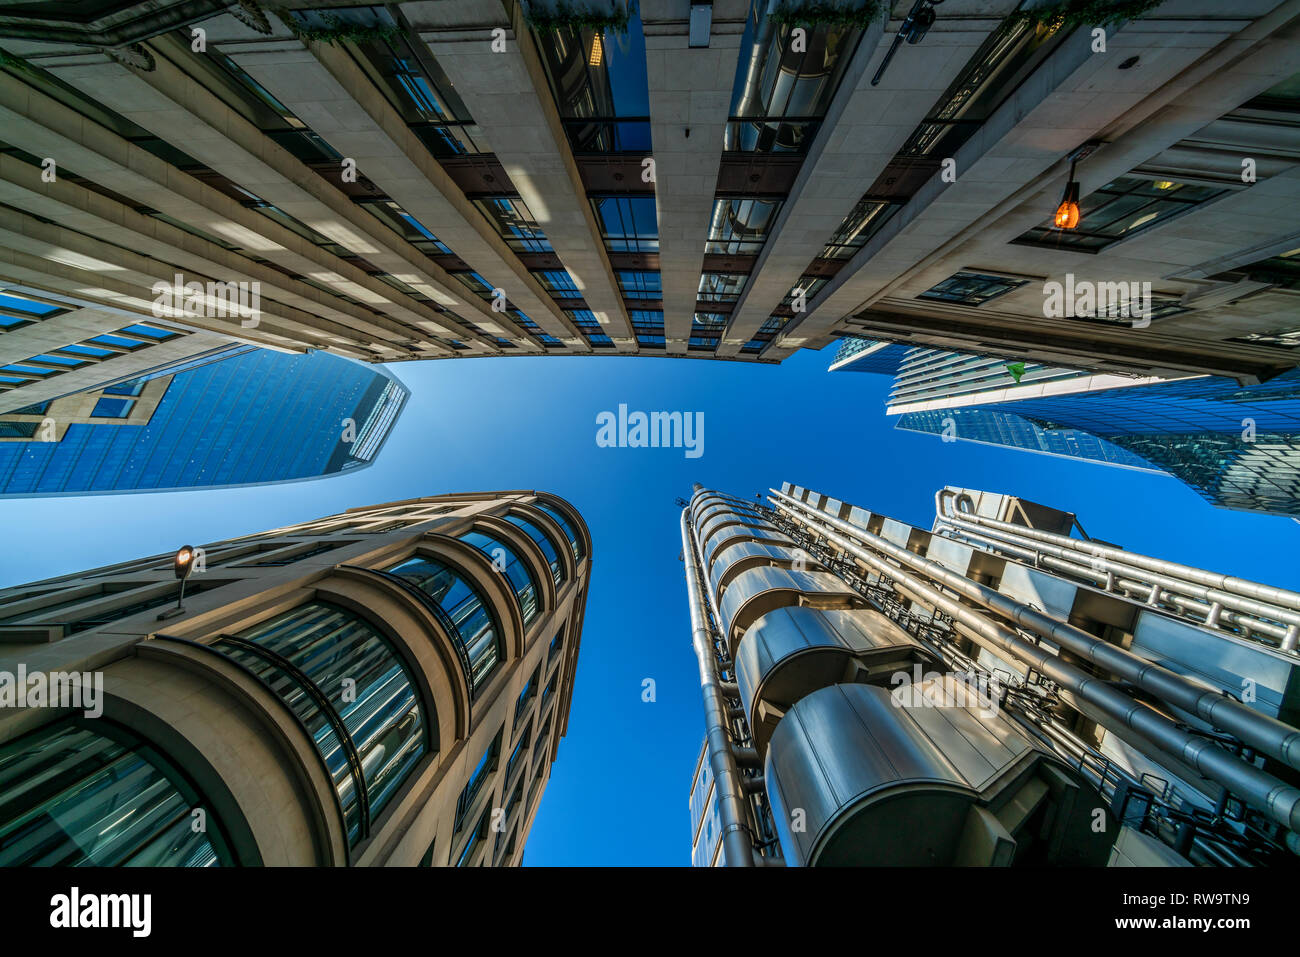 LONDON, UK - FEBRUARY 23, 2019: Upward view of  modern skyscrapers in the City of London, the heart of financial district in London. Stock Photo